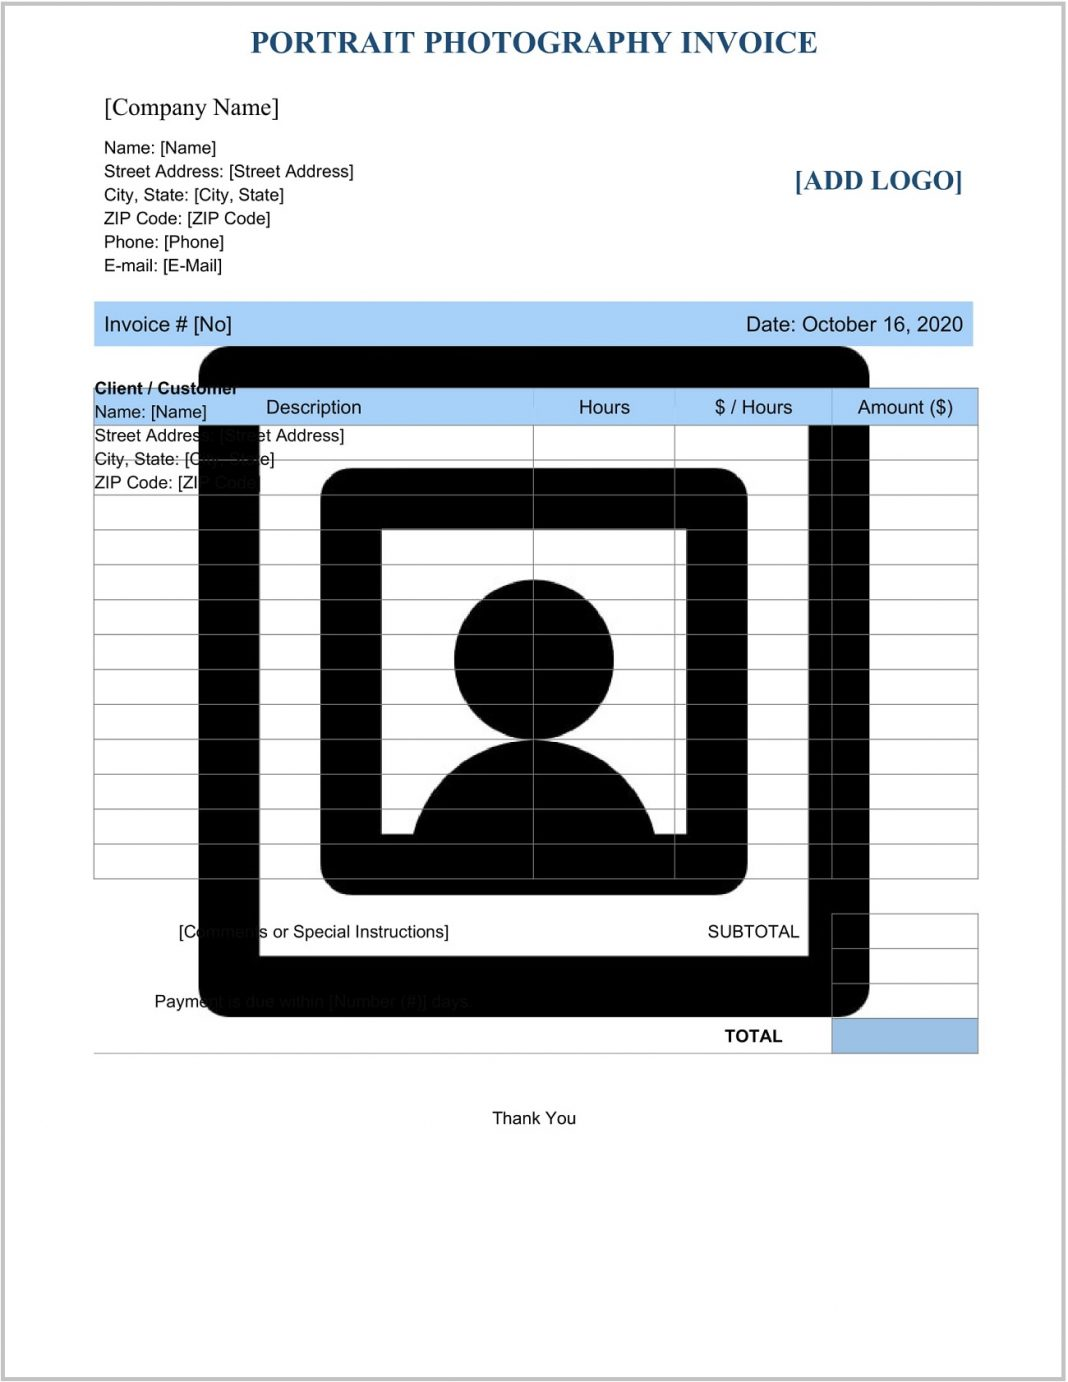 Portrait Photography Invoice Template Word Form Bill Book Format Psd Google Docs Photo Studio In  Example Large